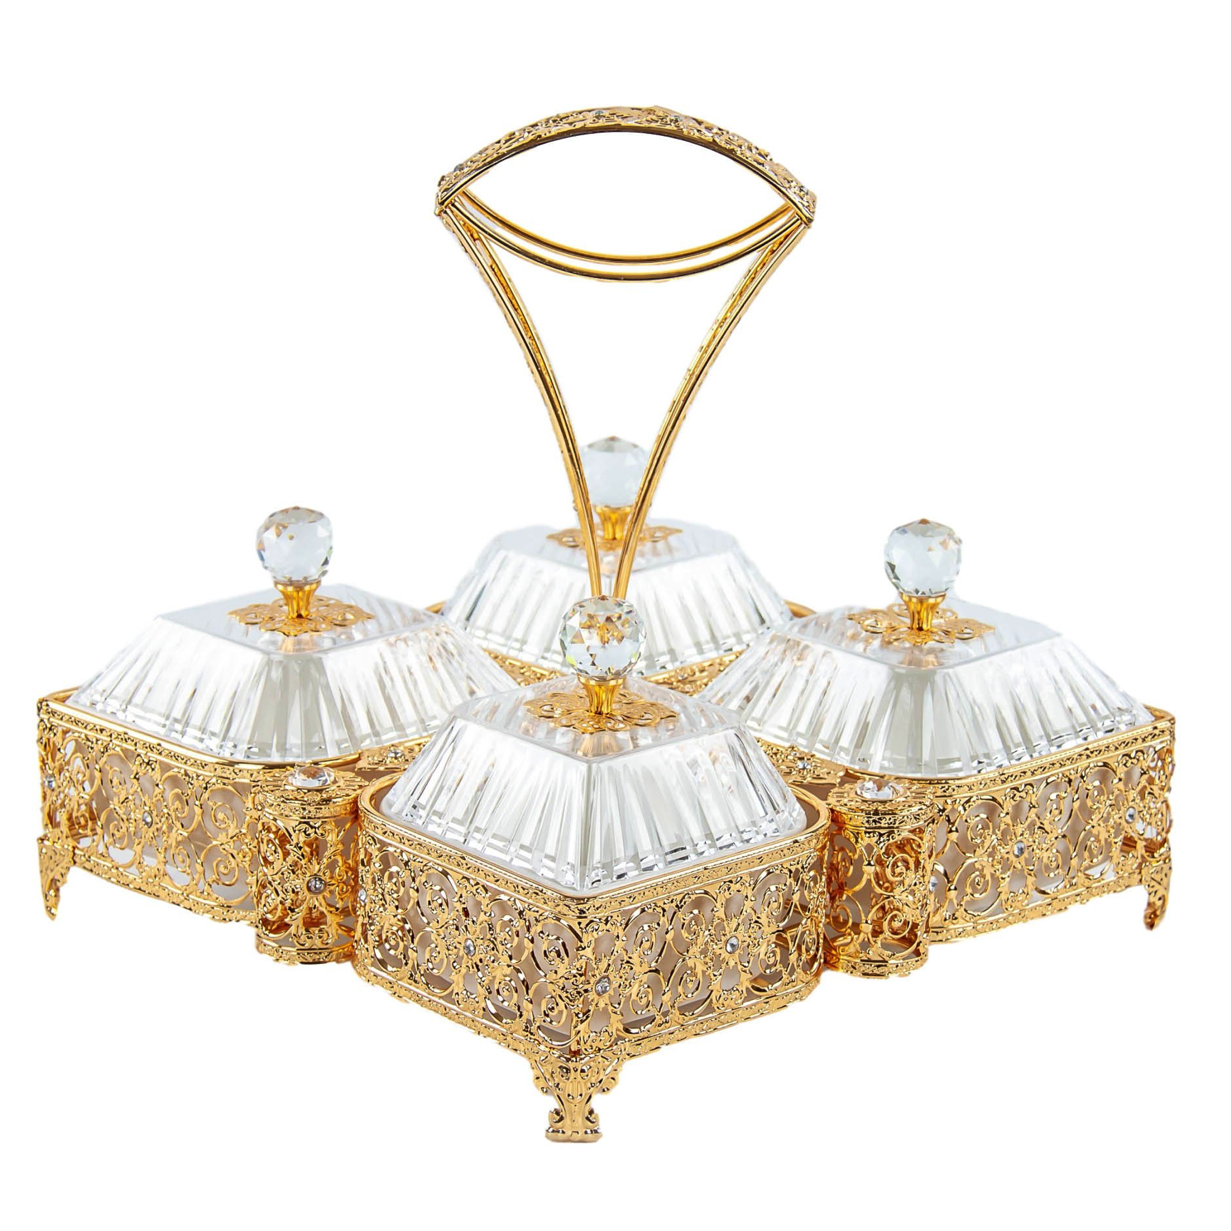 Ornate Party Tray Square Gold Set Serving Tray Gold Embroidery 4 Bowls With Lids